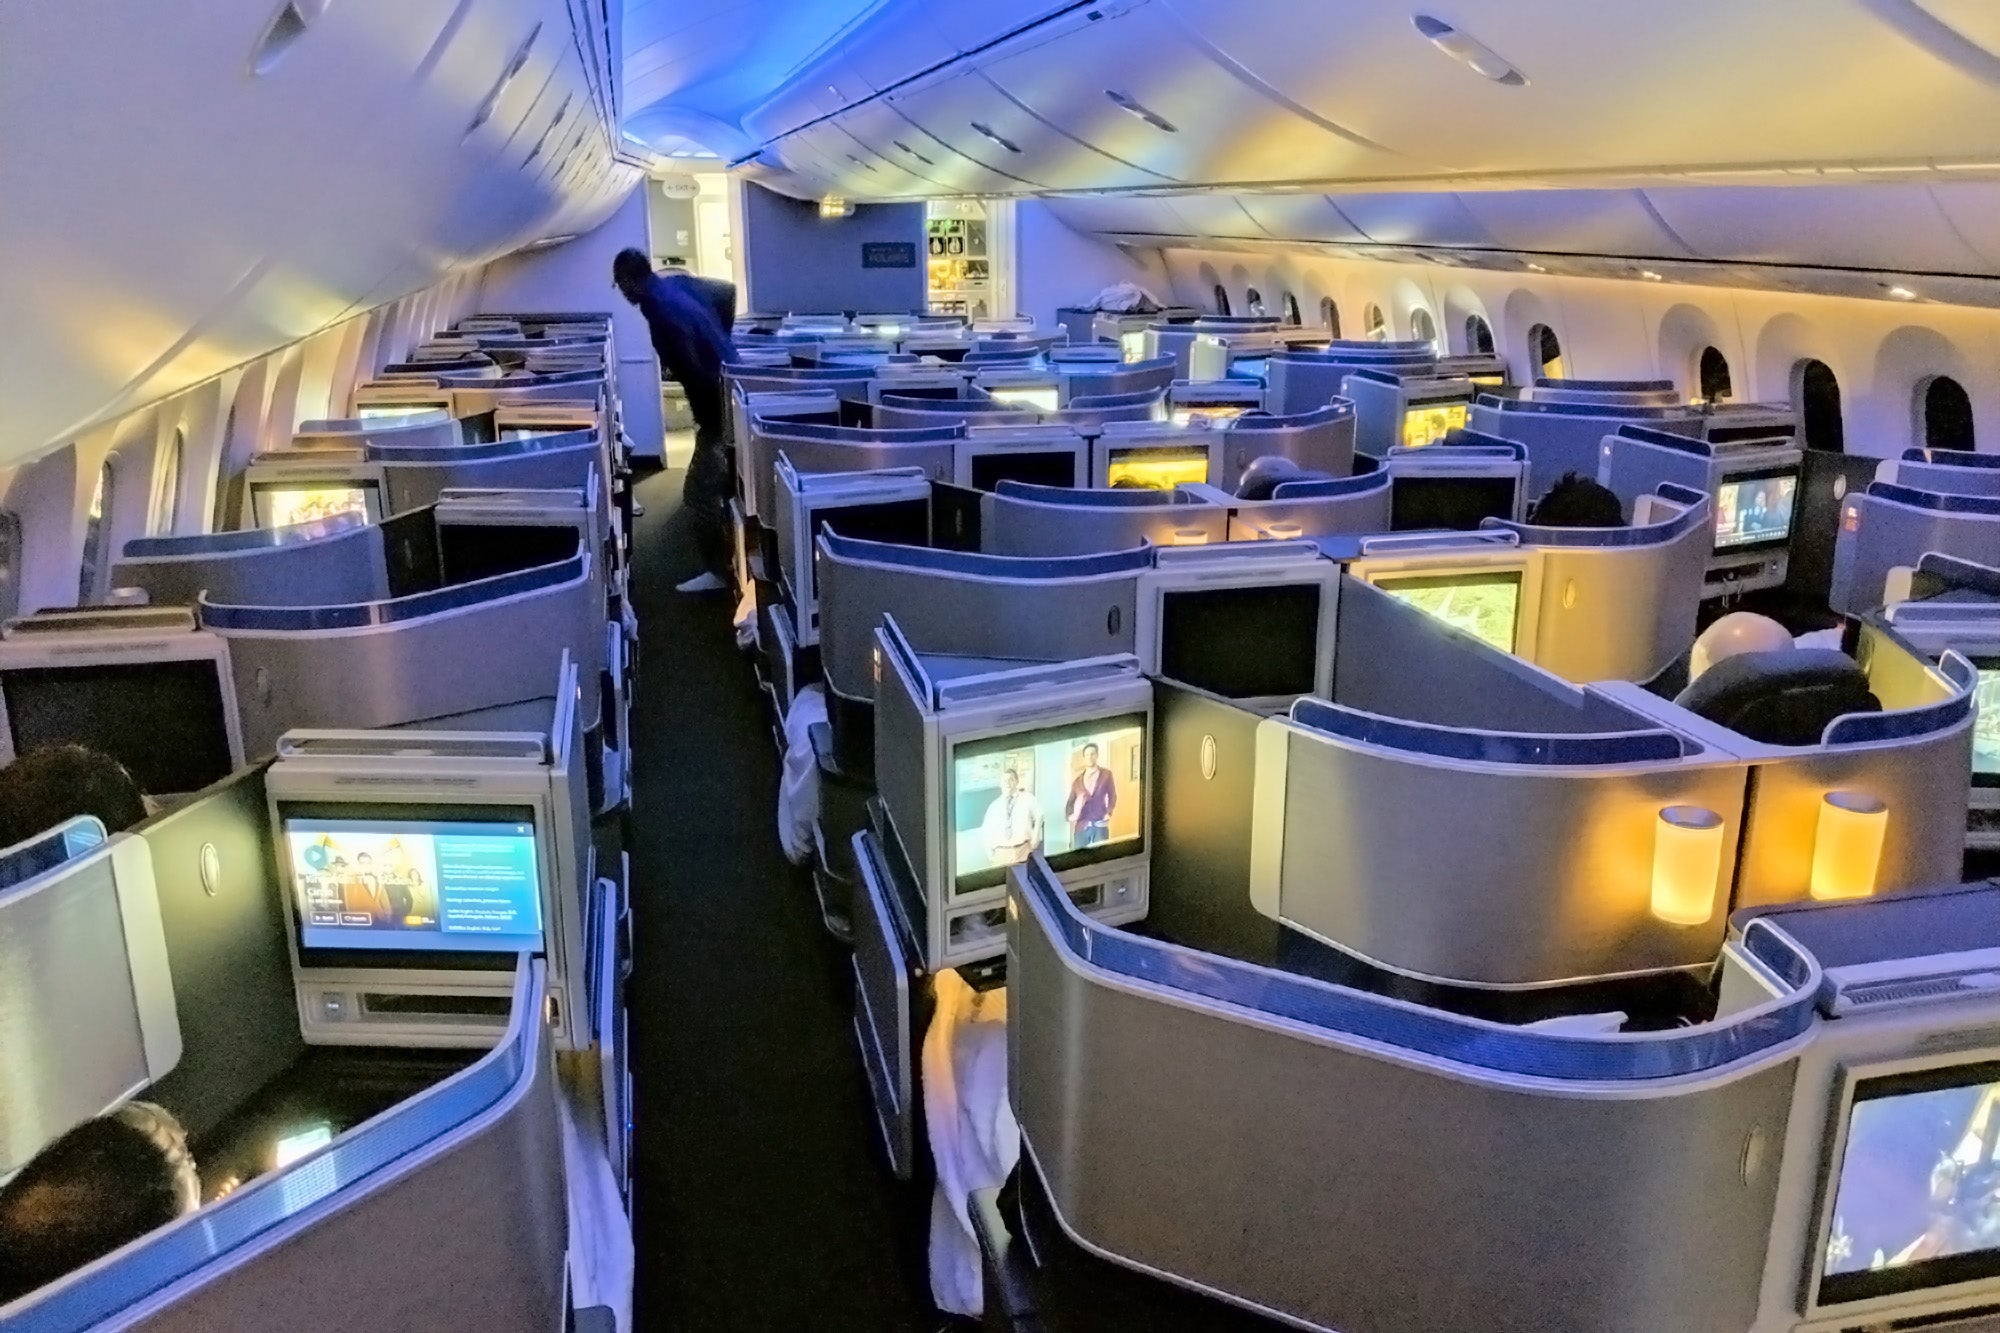 United's Polaris business class now uses the same fare codes as domestic first class. Photo by Zach Honig.